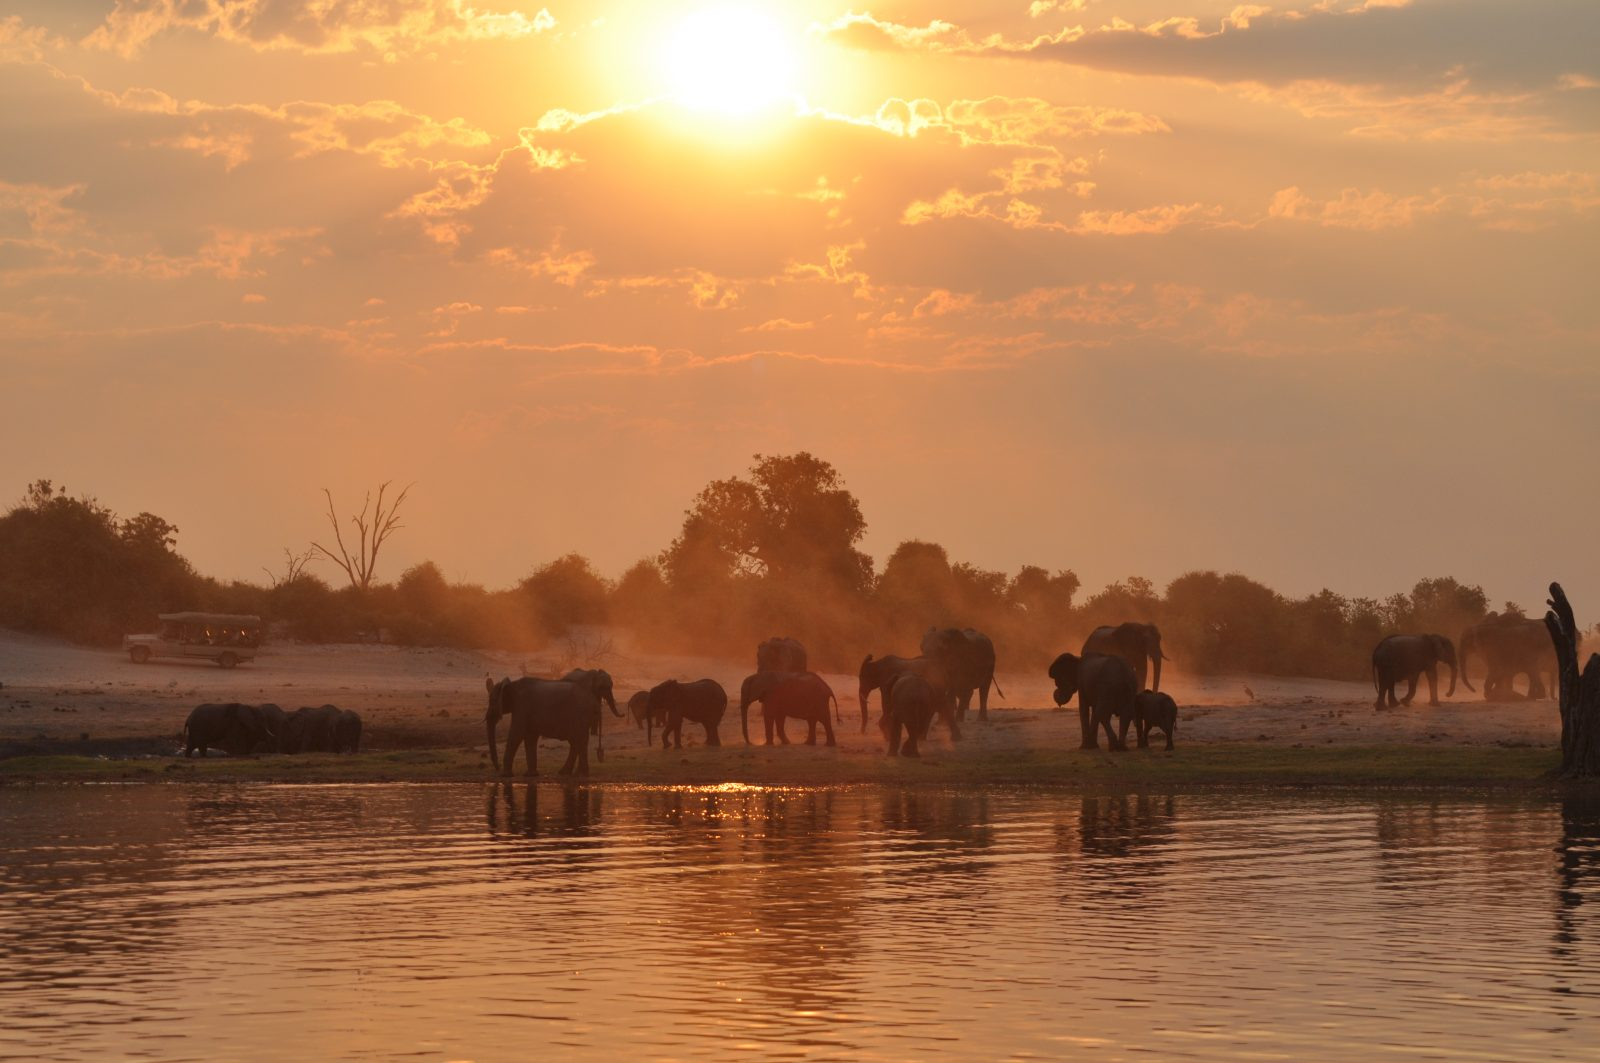 Just another sunset on the Chobe River!